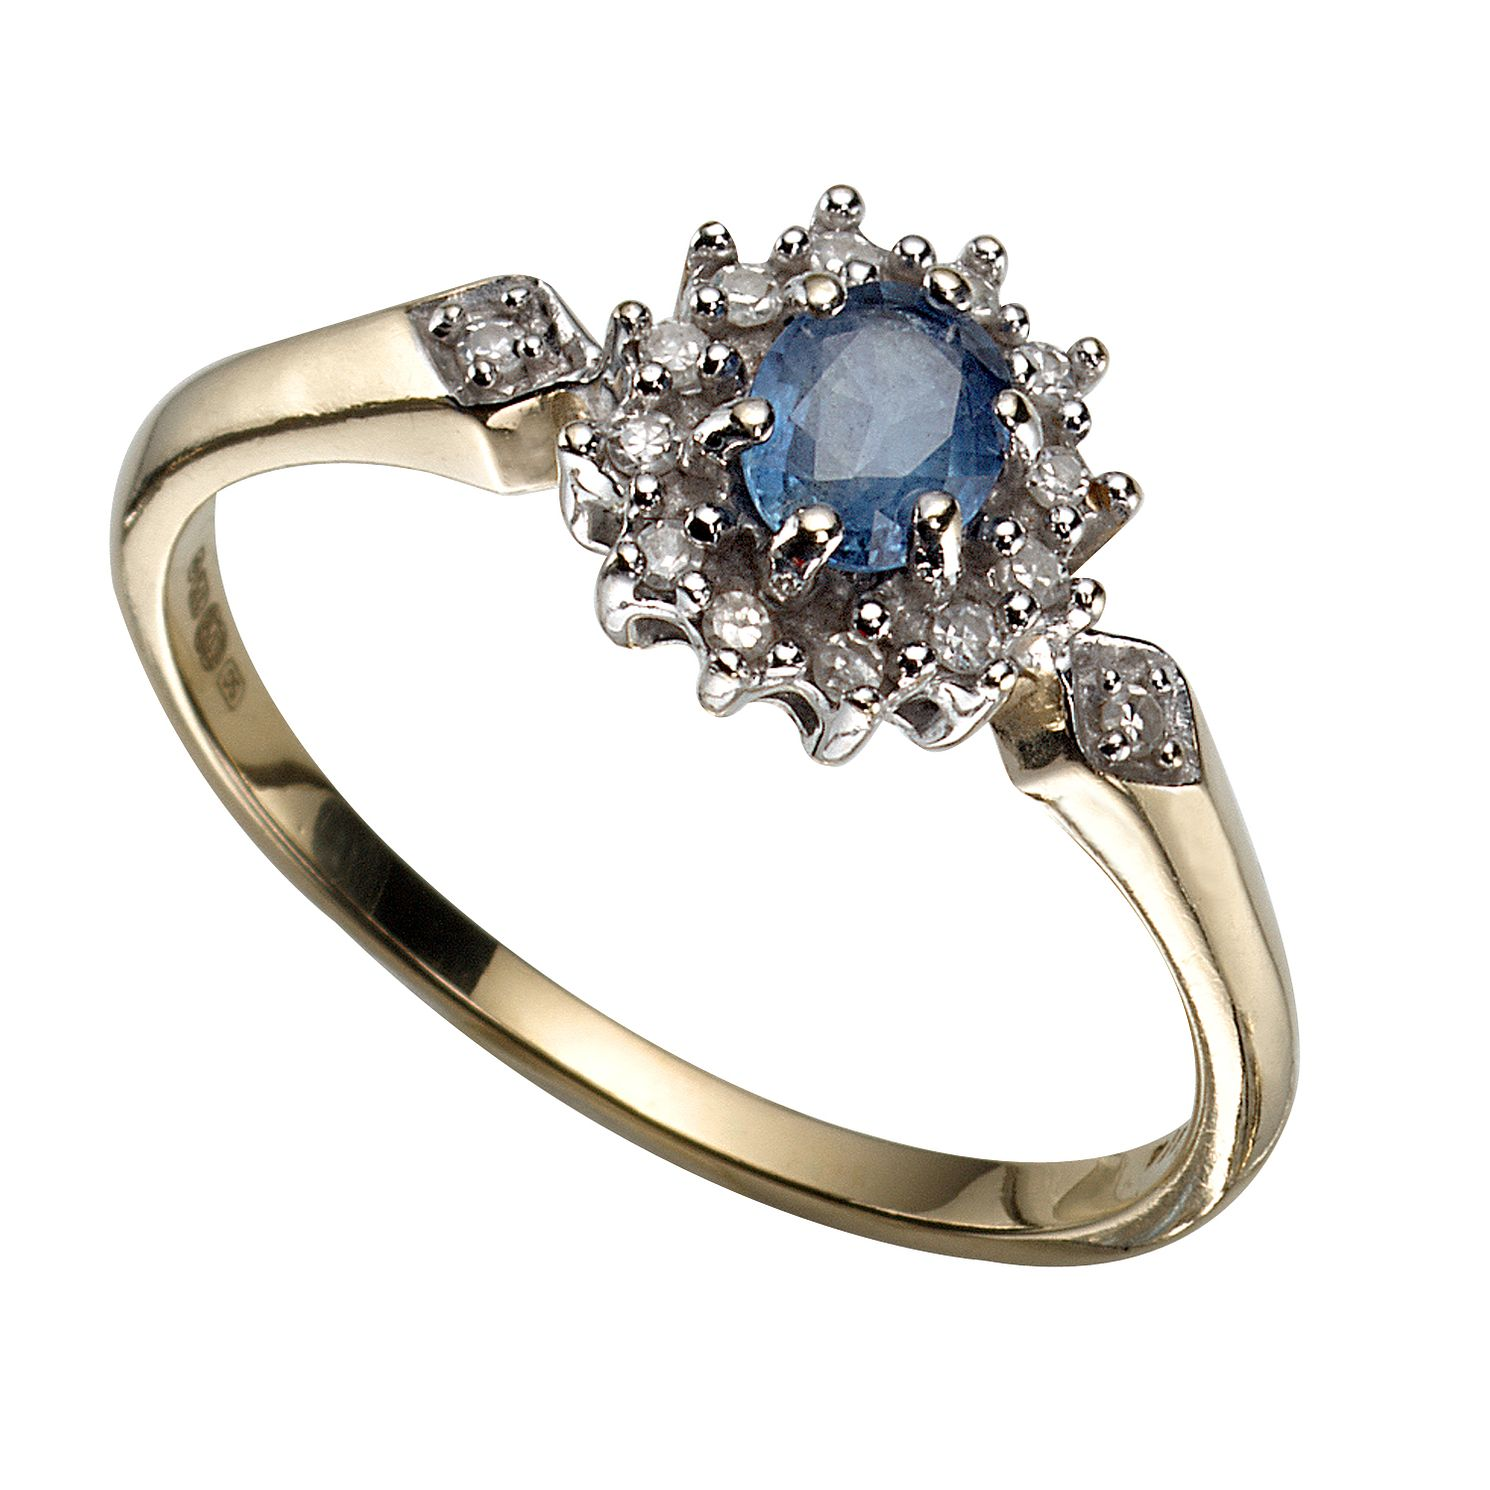 prong light aqua shop floor trellis emitter rings render gold metal with white blue stone three ctw oval sapphire ring jewellery center